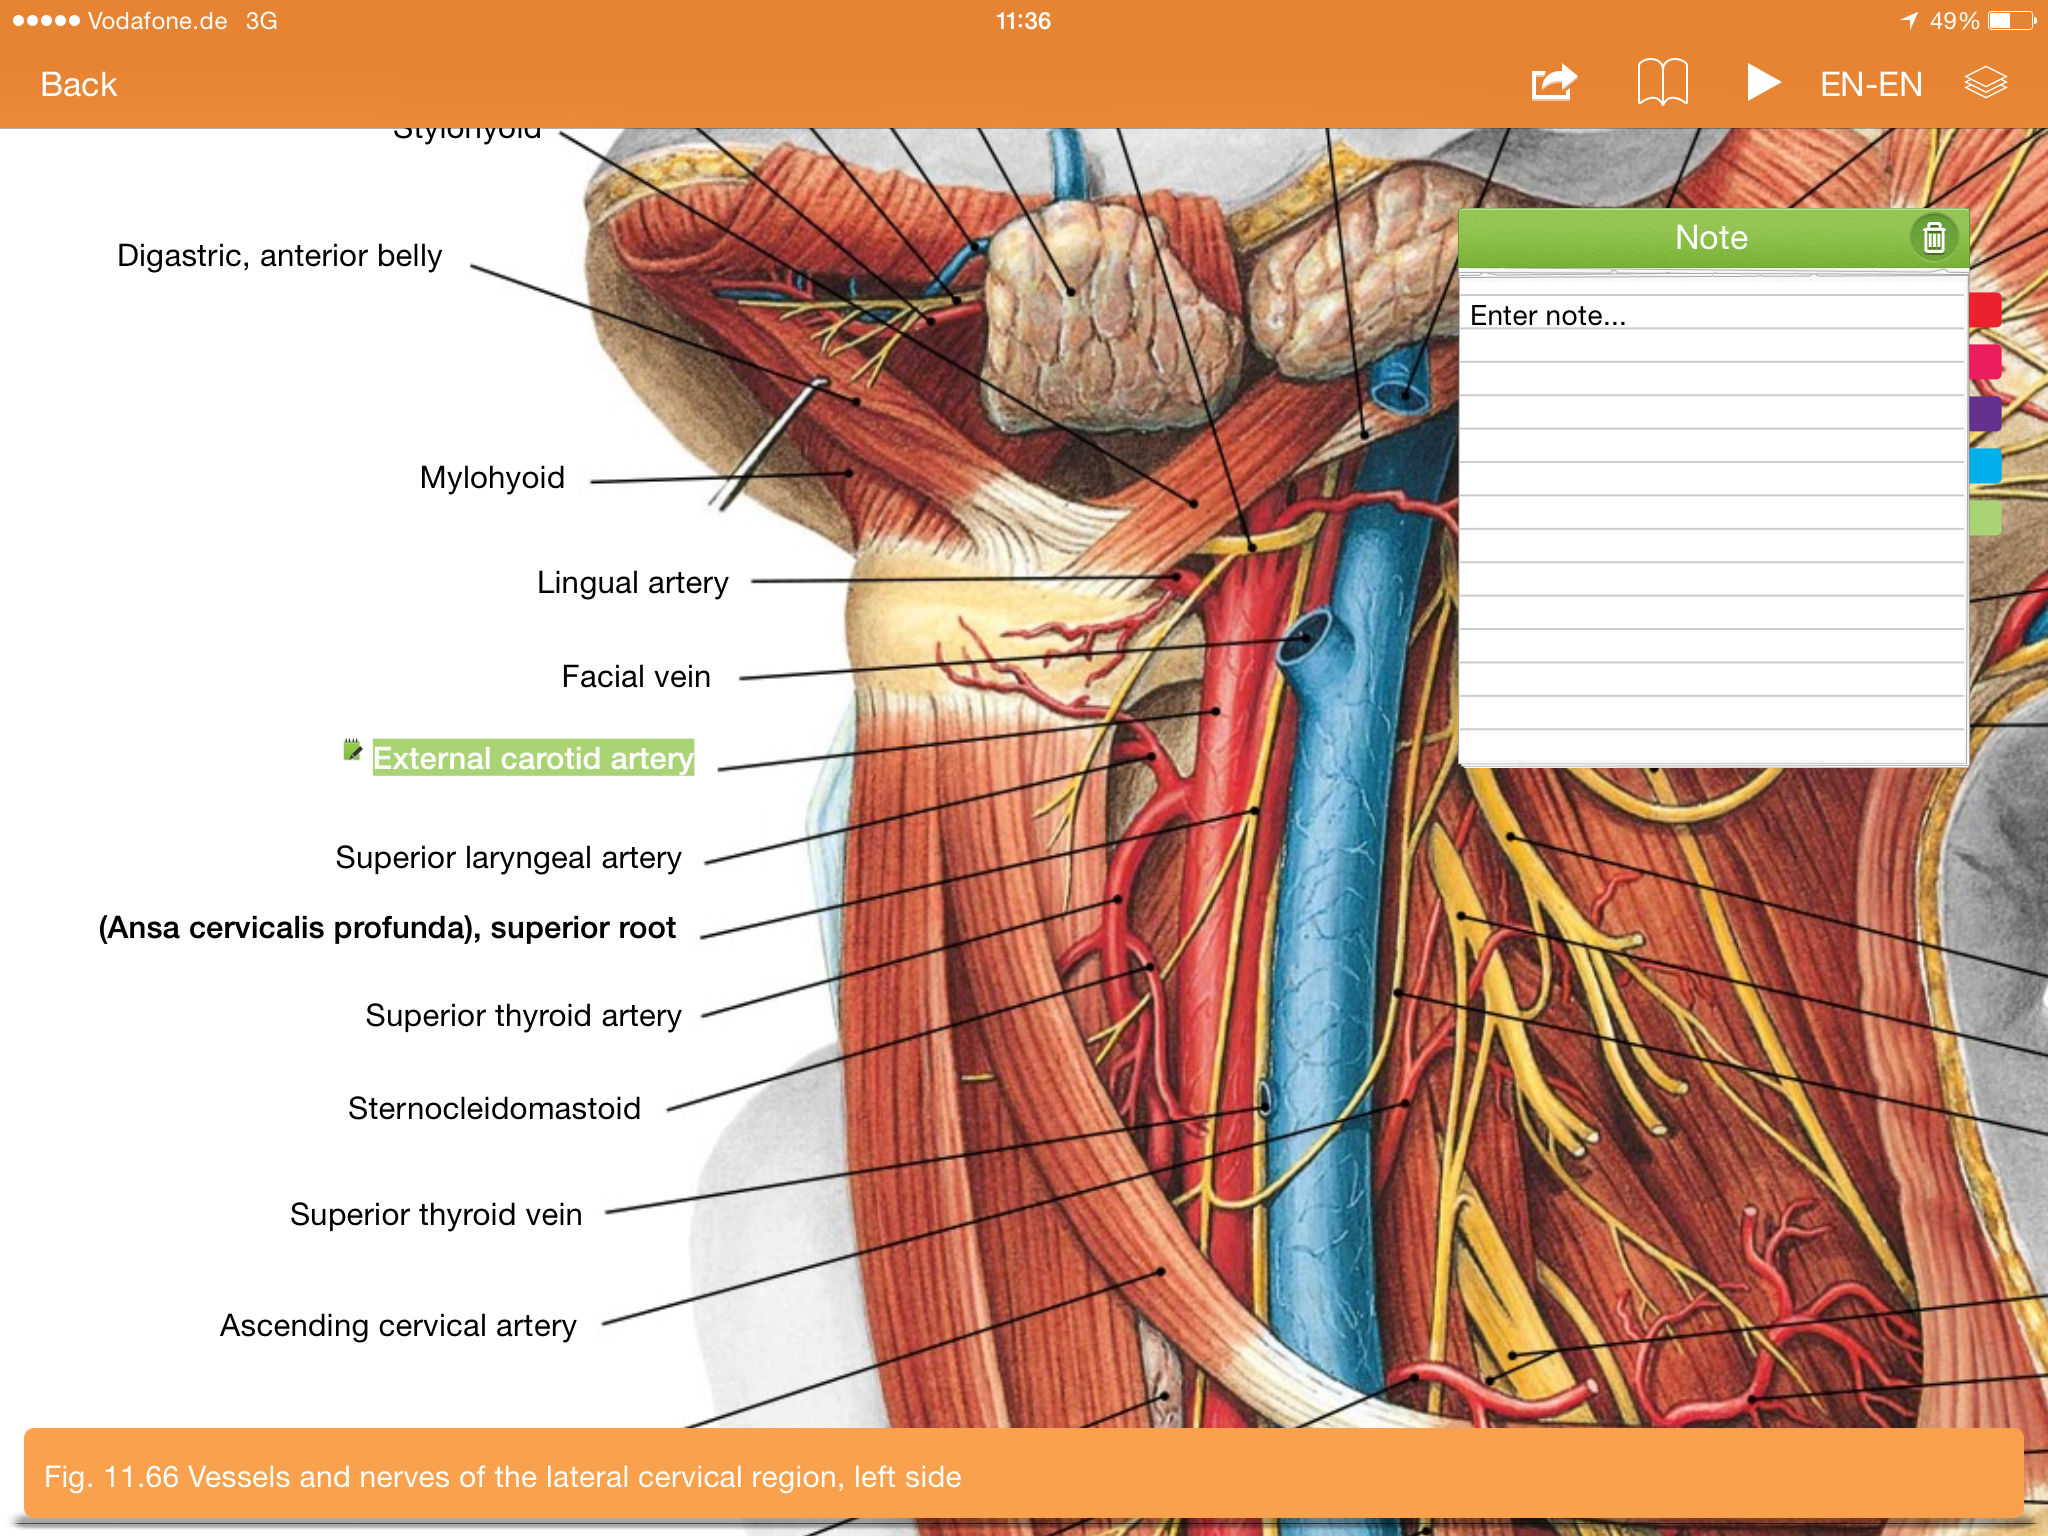 Sobotta Anatomy Atlas Free App Ranking and Store Data | App Annie